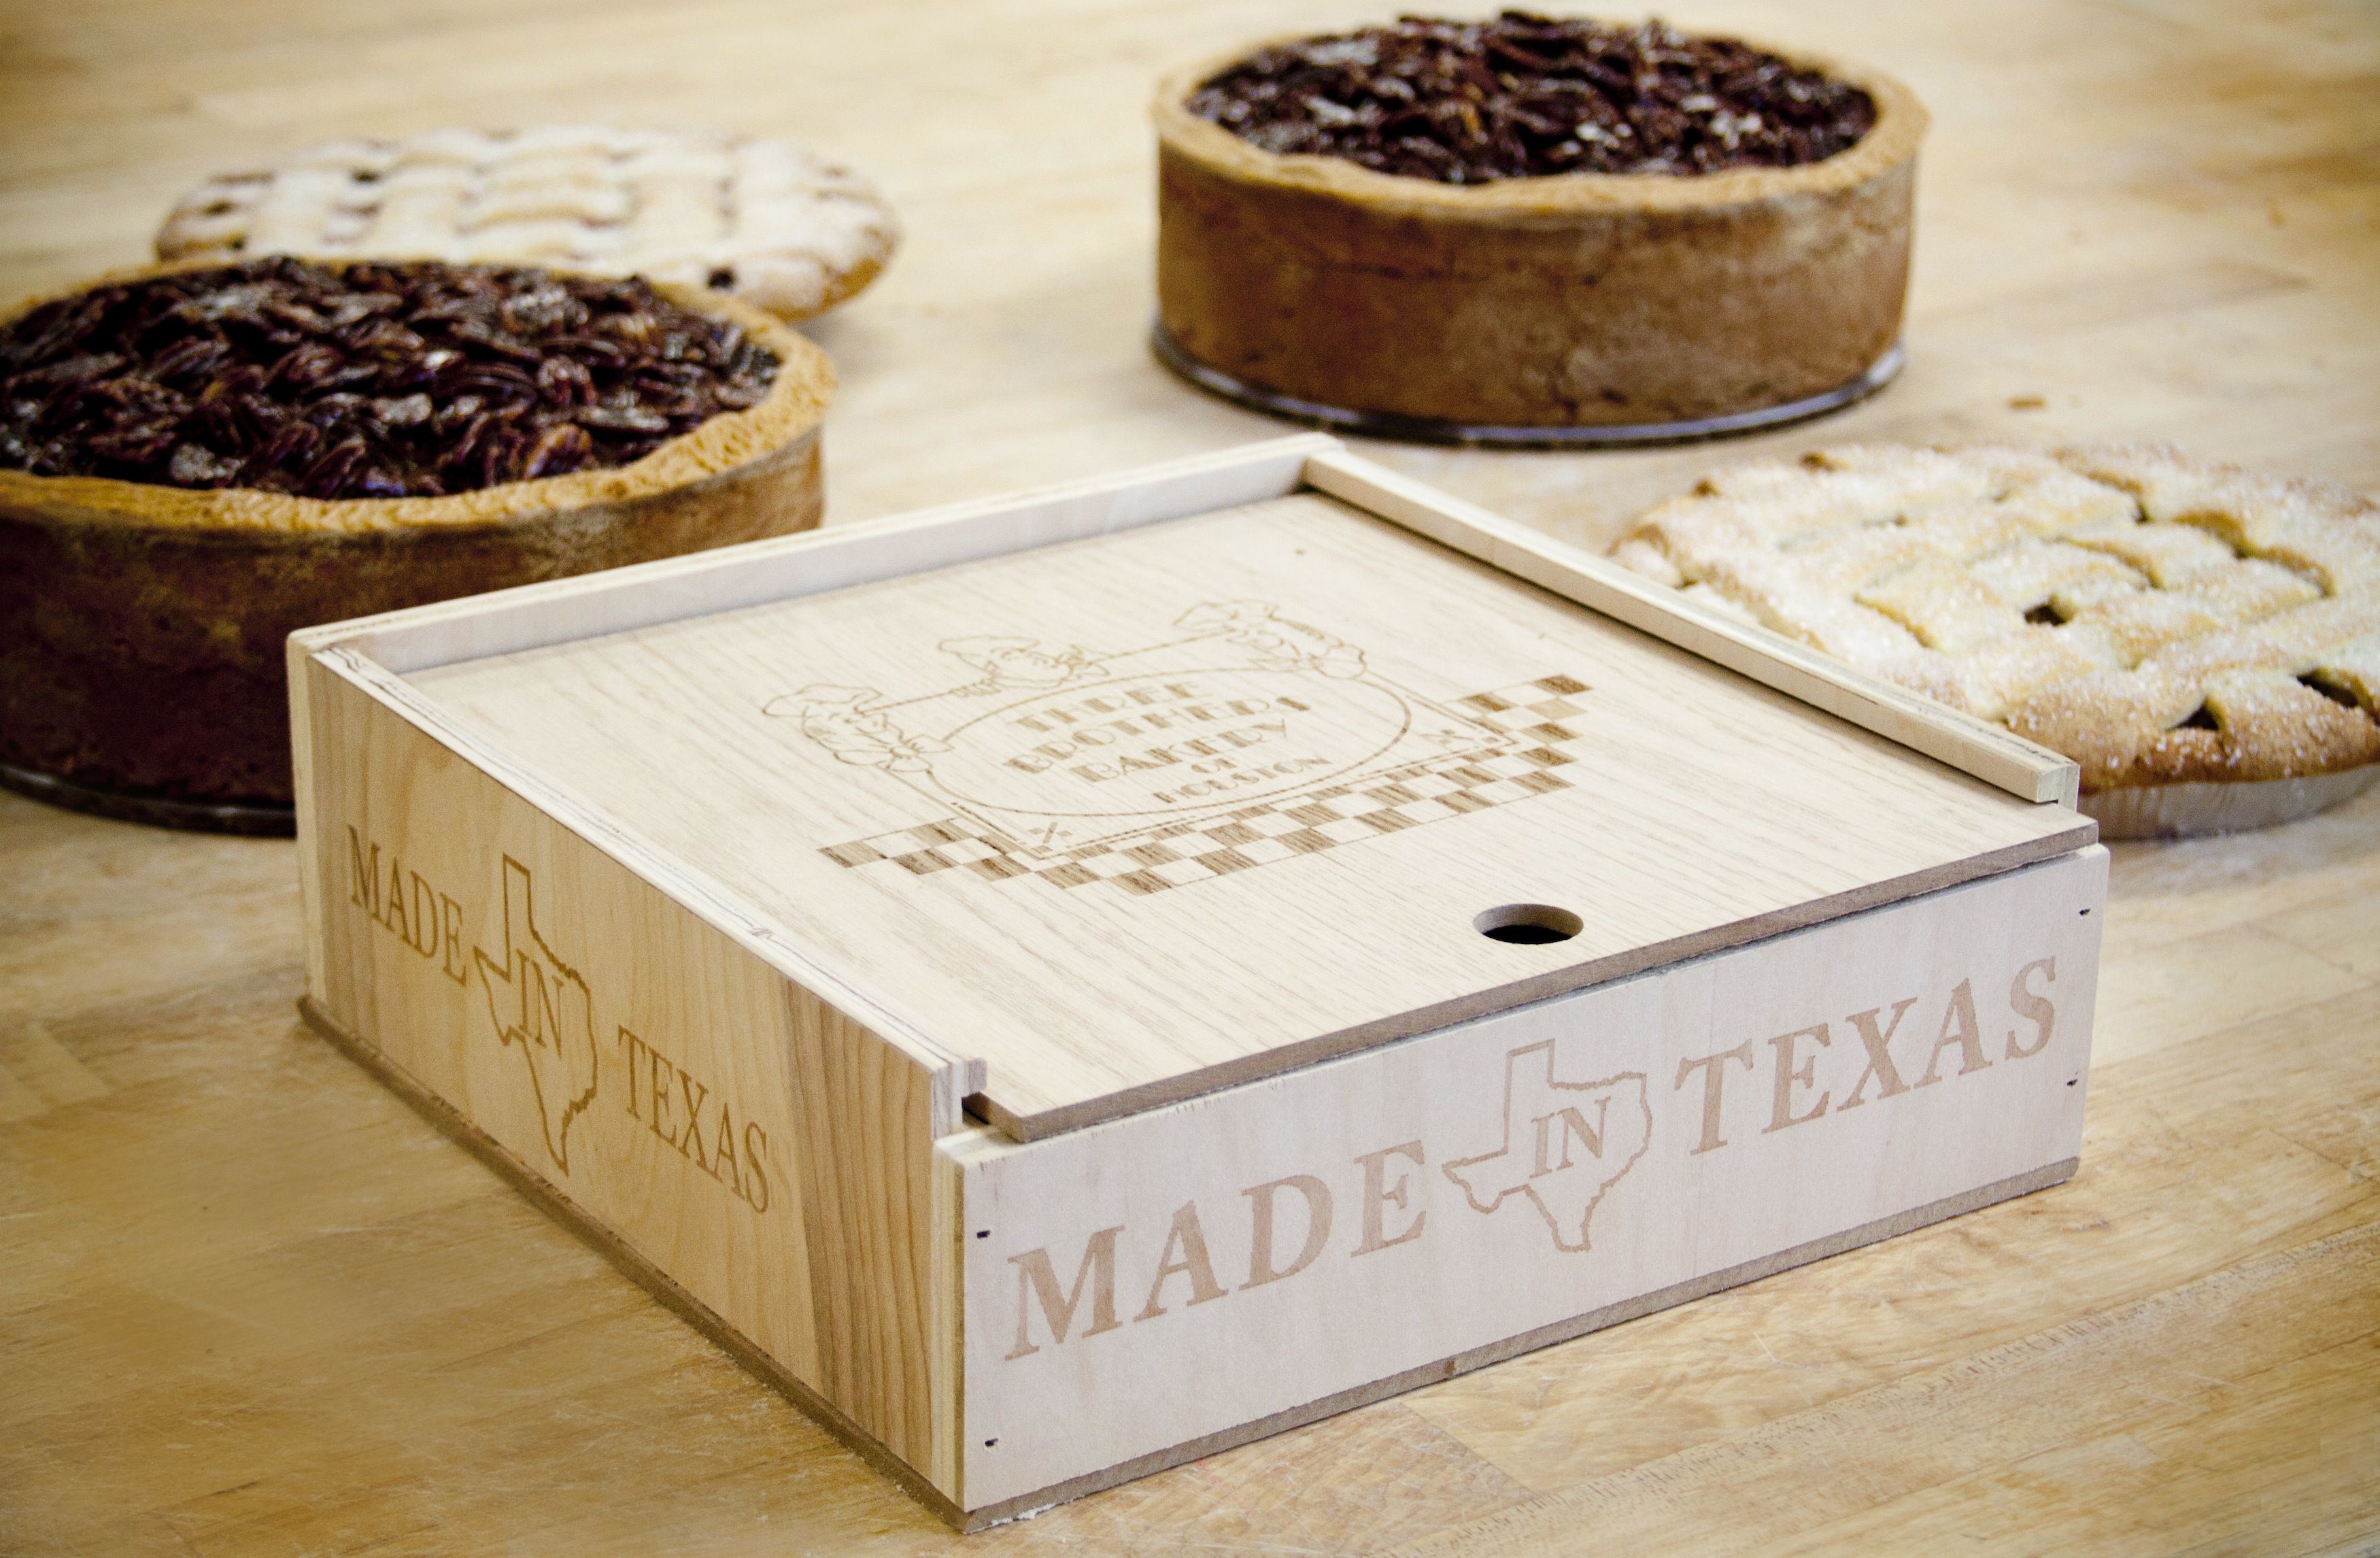 Where to Get The Best Mail Order Pies - Nationwide Mail-Order Pies